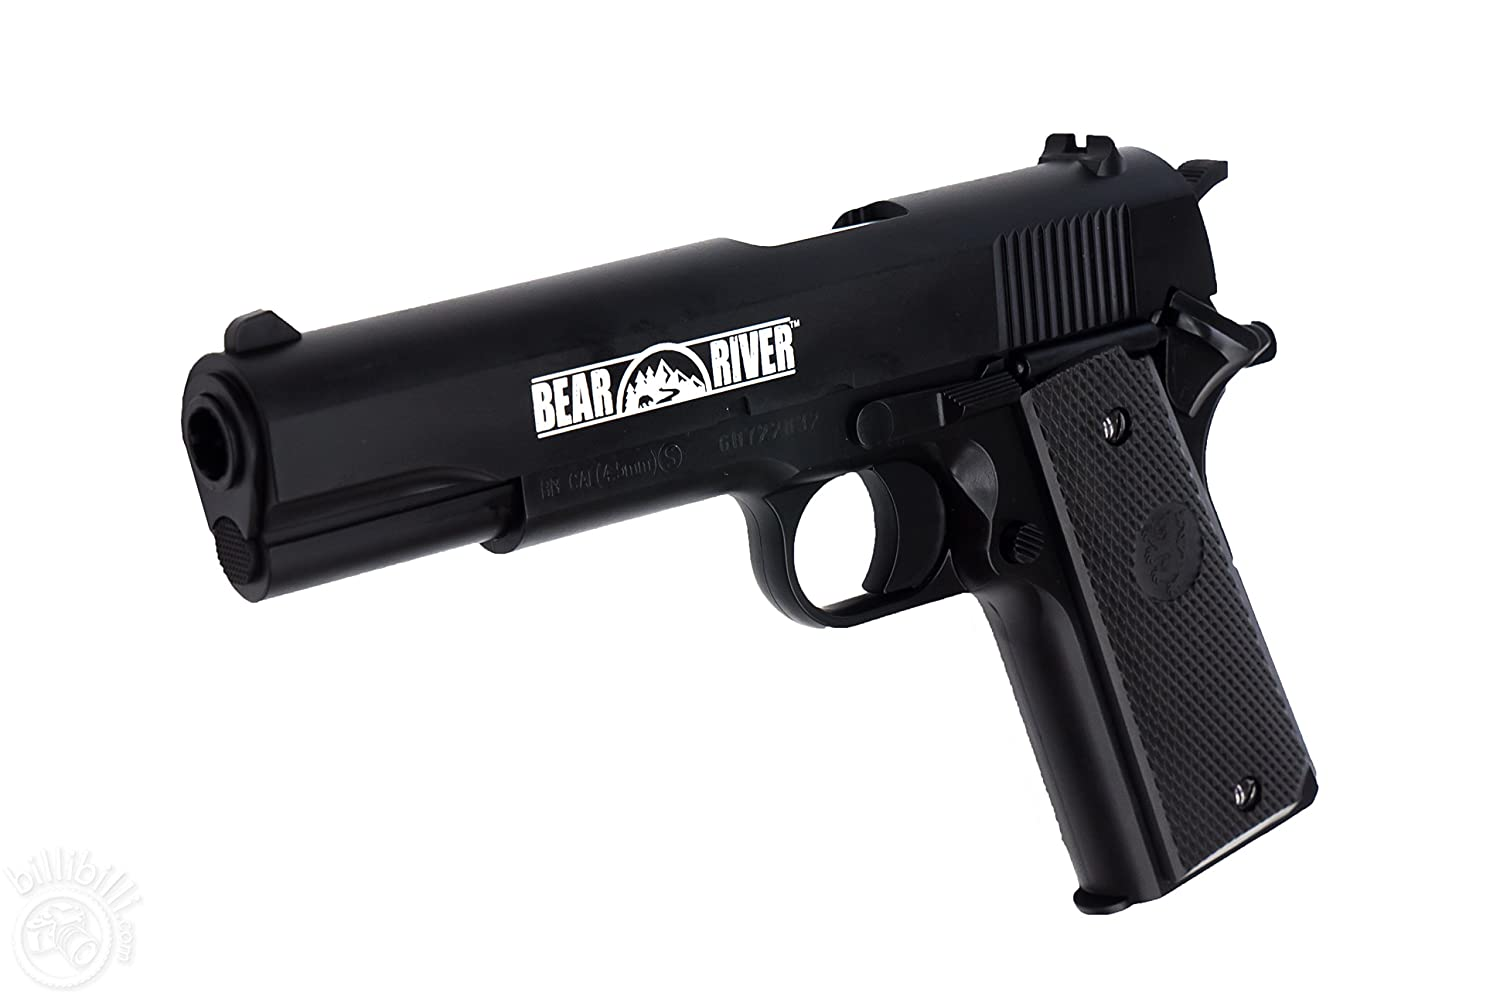 Bear River 1911 BB Pistol Kit - Spring Powered BB Gun - No CO2 Needed - Includes Gel Target and Ammo